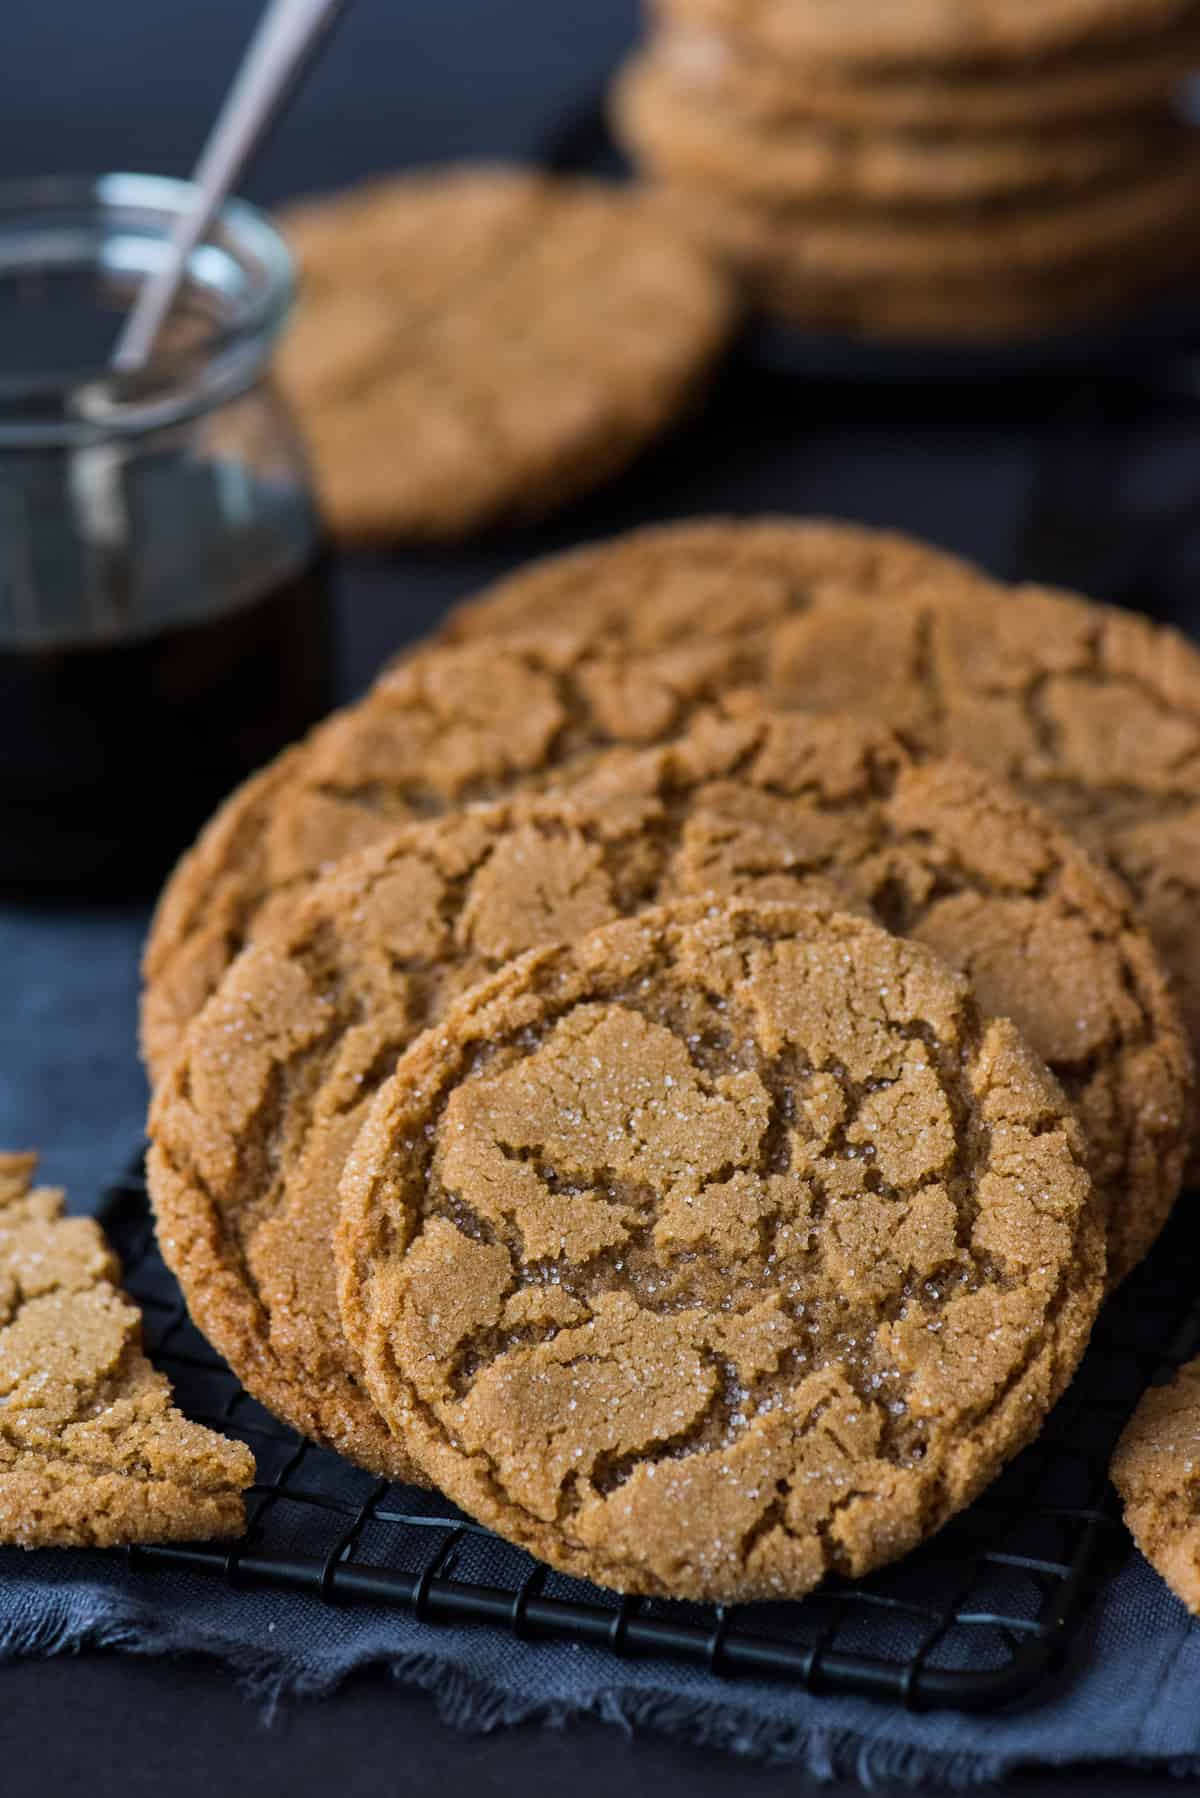 molasses ginger cookies on black wire rack on dark background with cookies and molasses in background